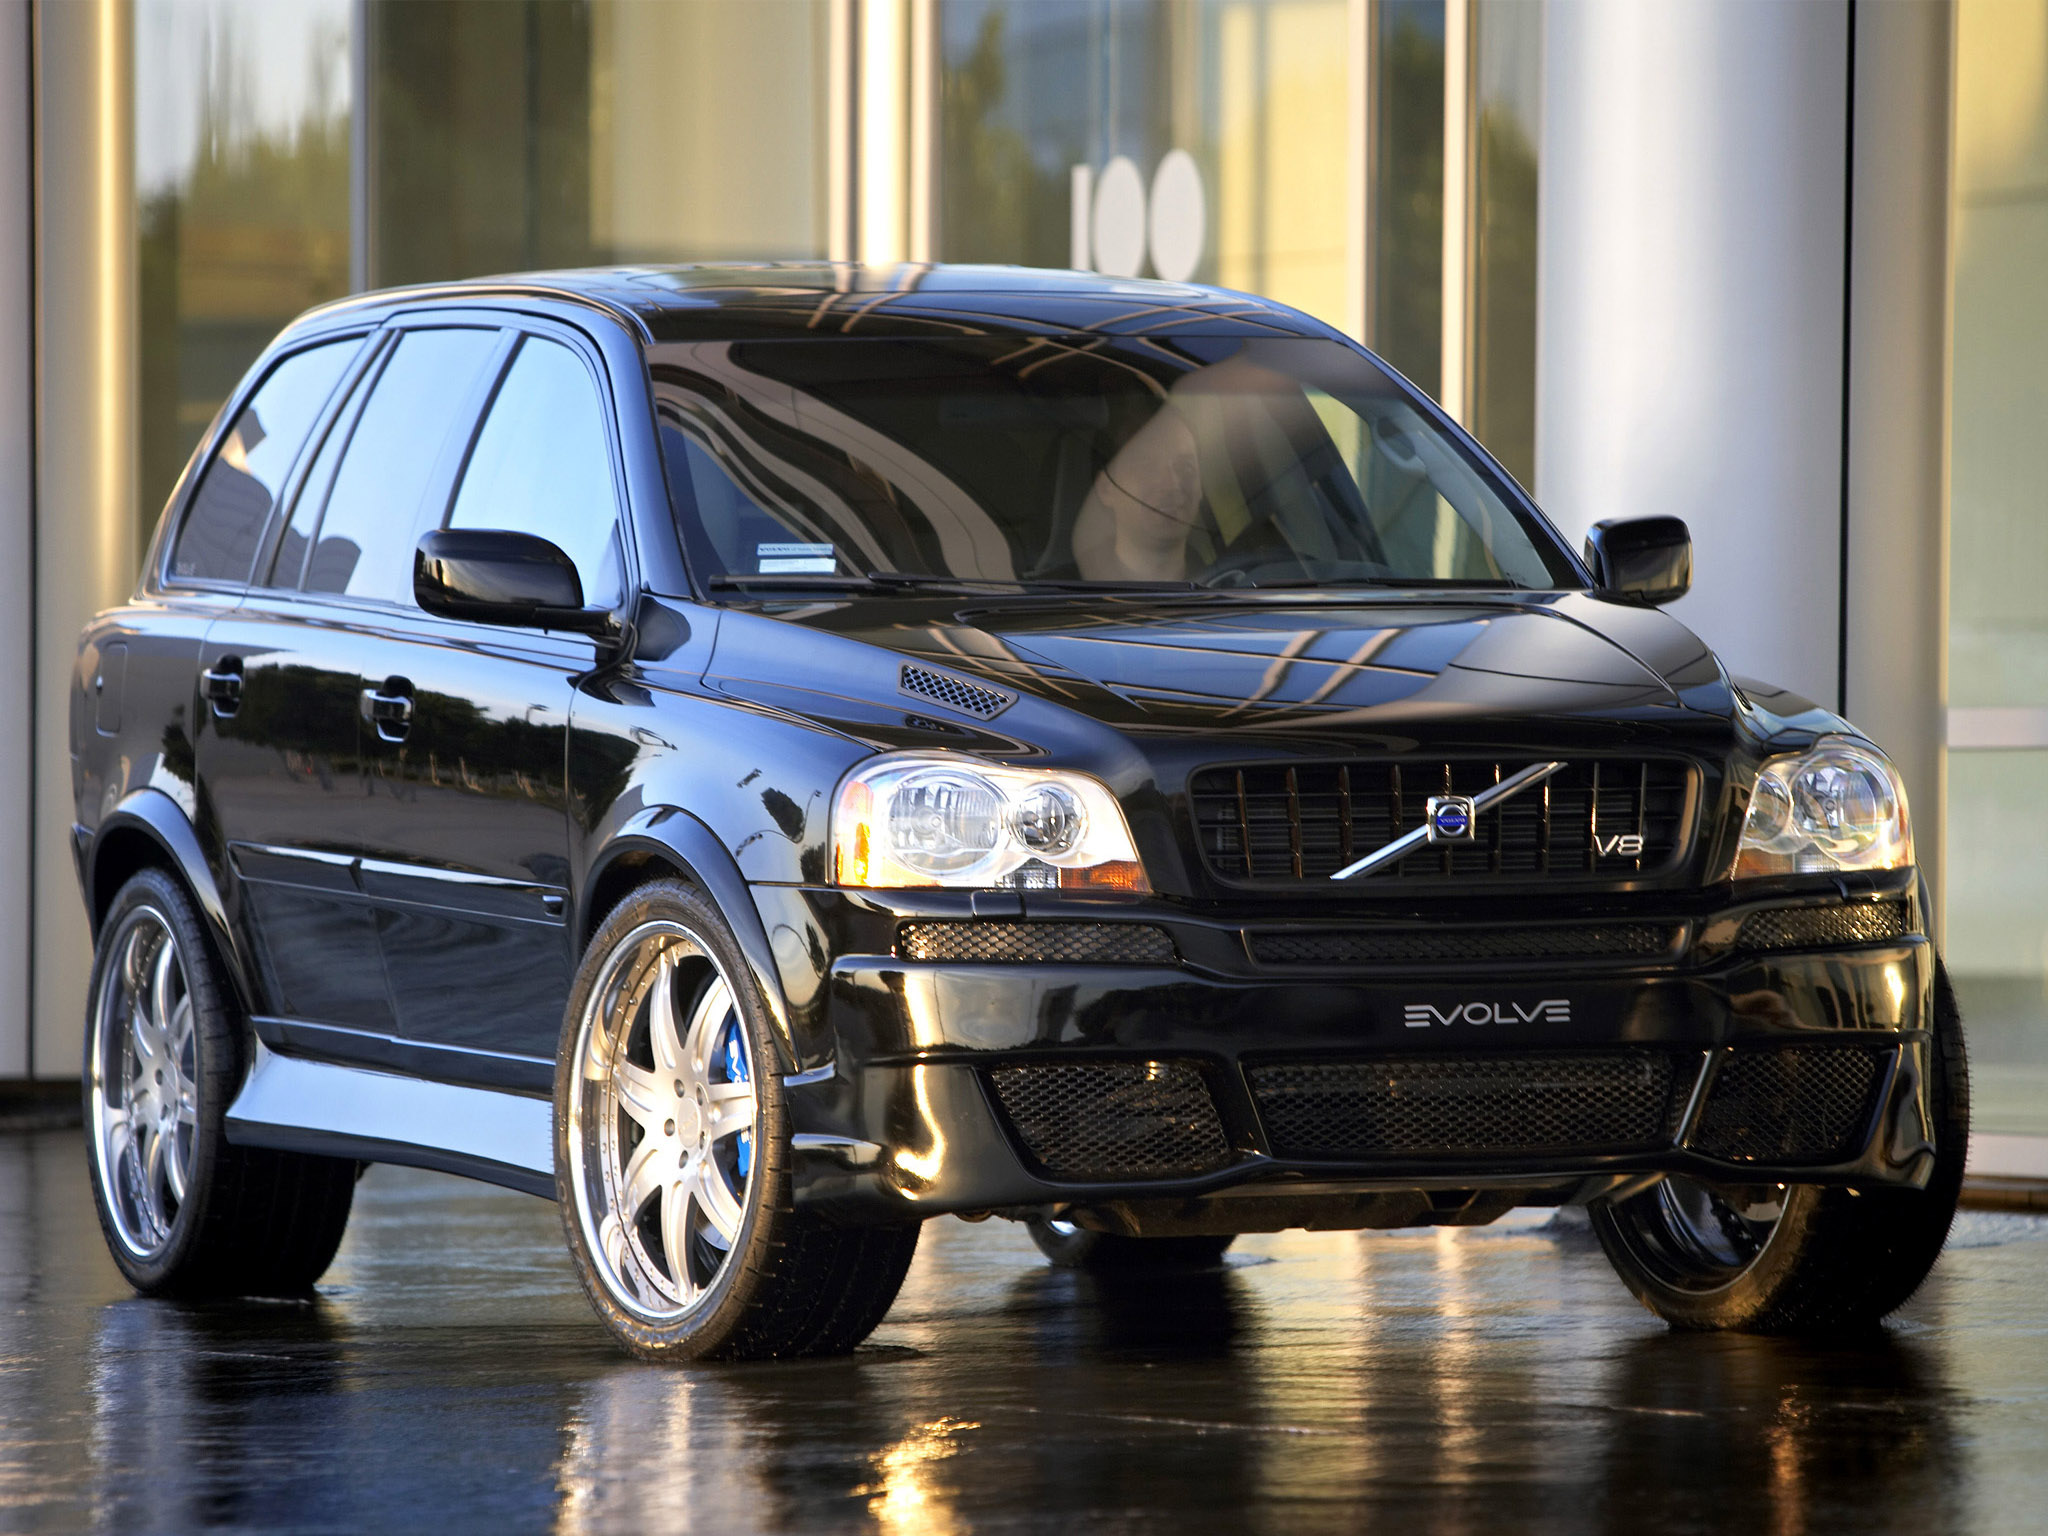 2006 evolve volvo xc90 v 8 suv tuning d wallpaper. Black Bedroom Furniture Sets. Home Design Ideas